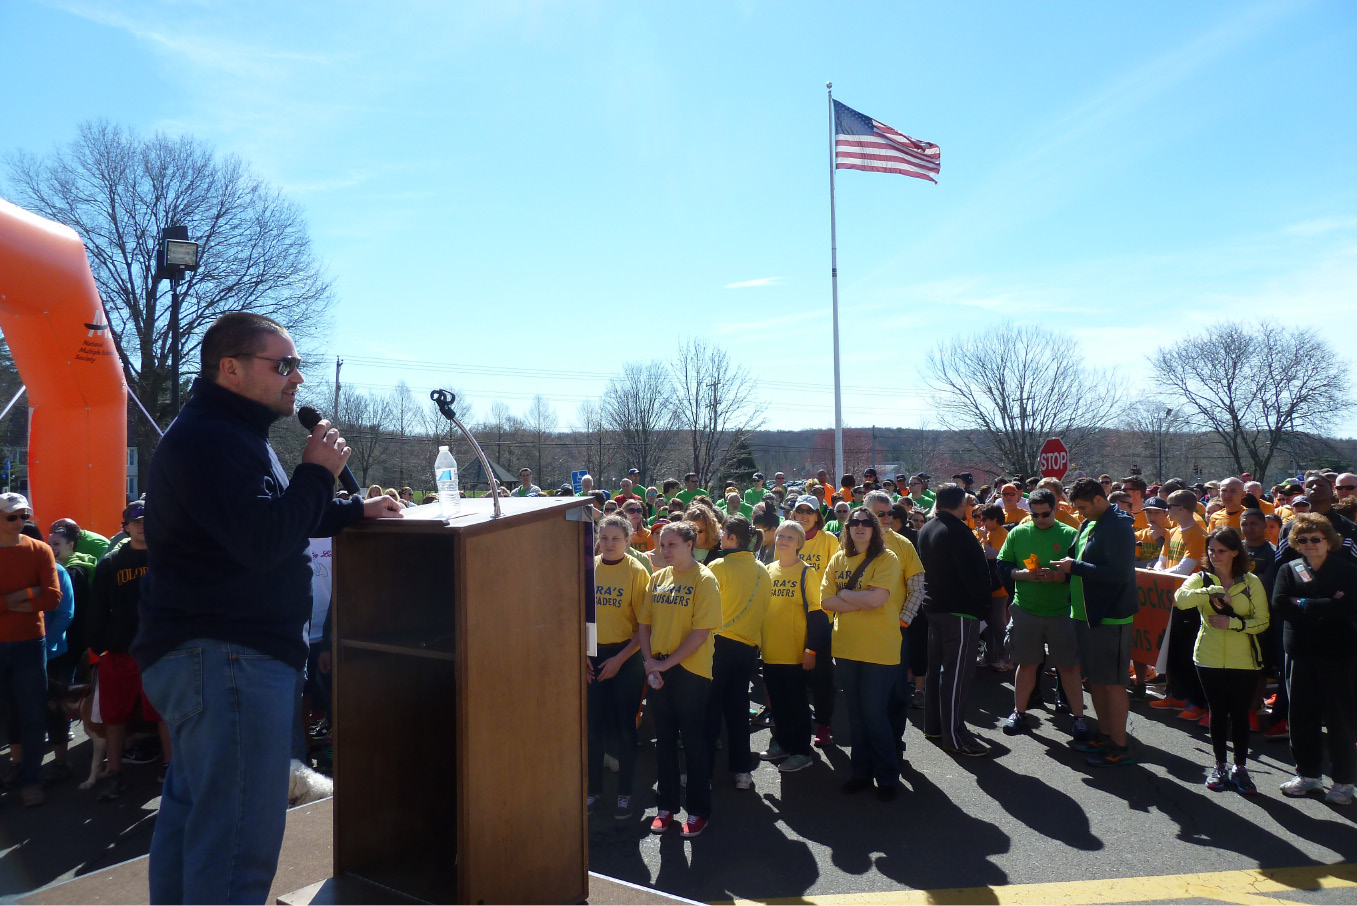 Joe Aguiar of Wethersfield addresses the crowd at Cheshire High School during Sunday